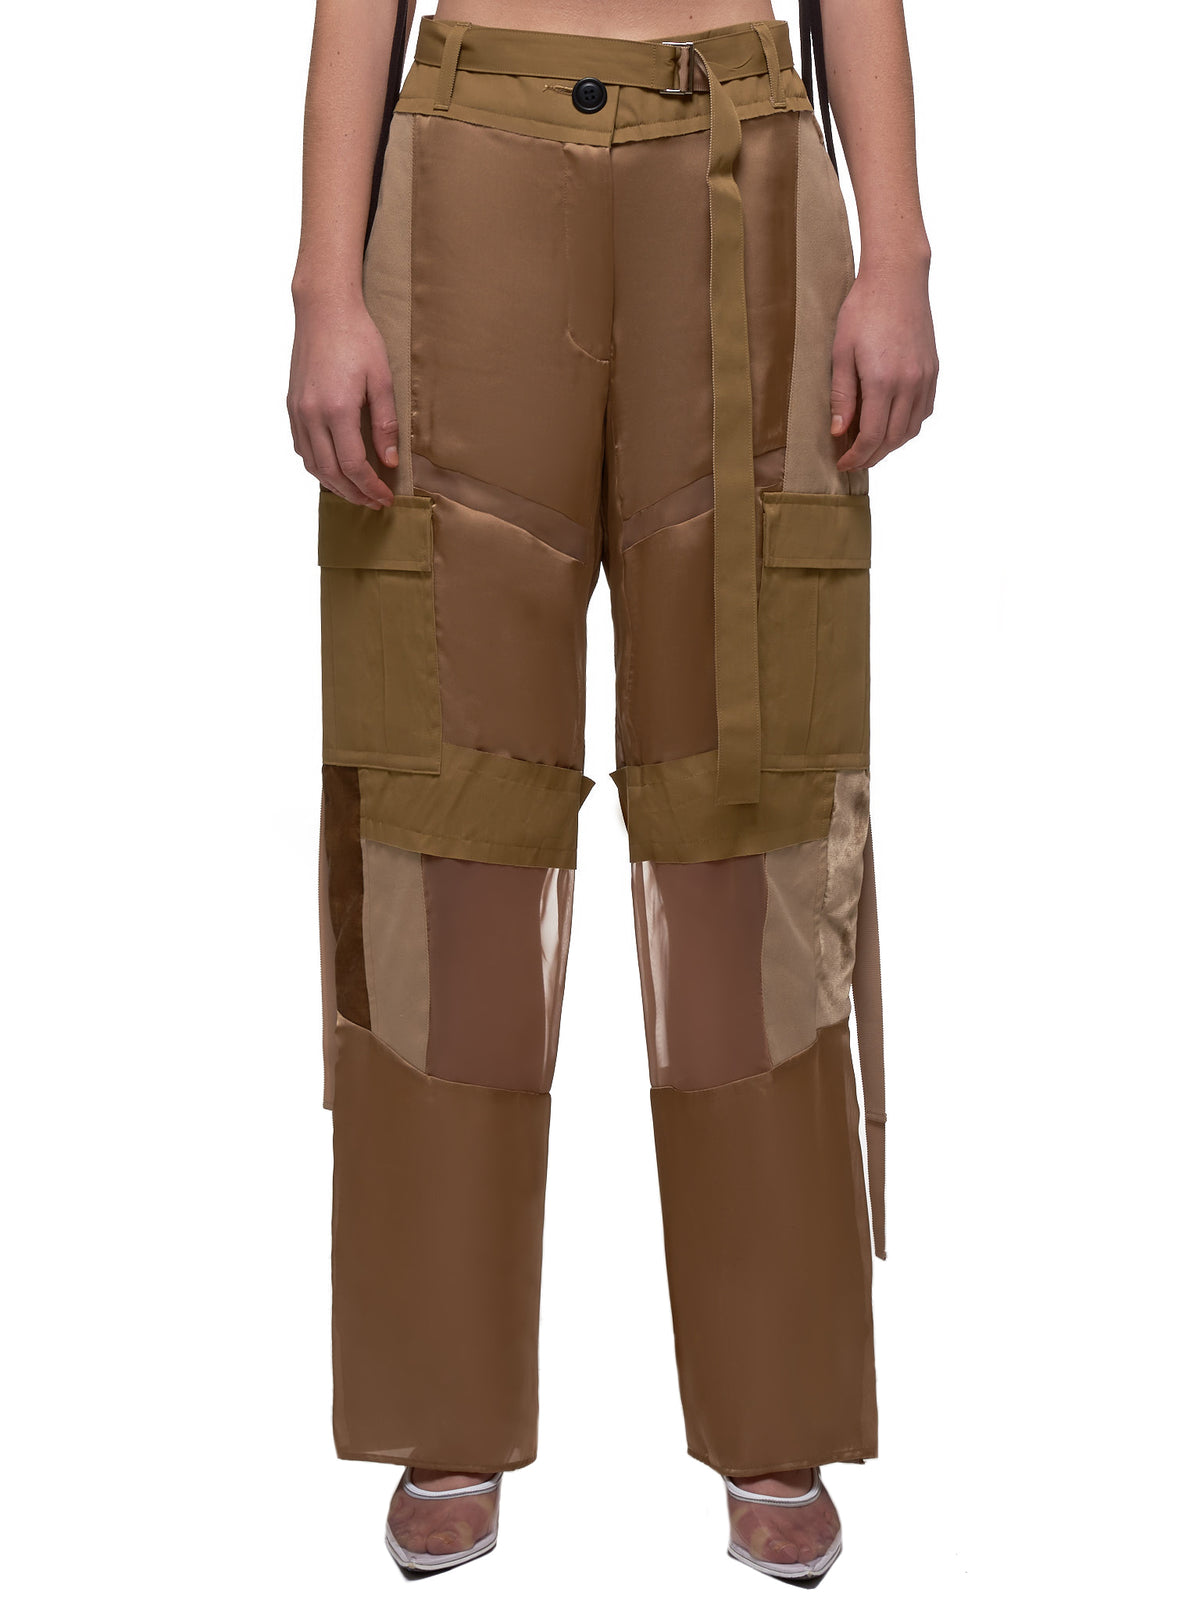 Patchwork Trousers (04902-651-BEIGE)